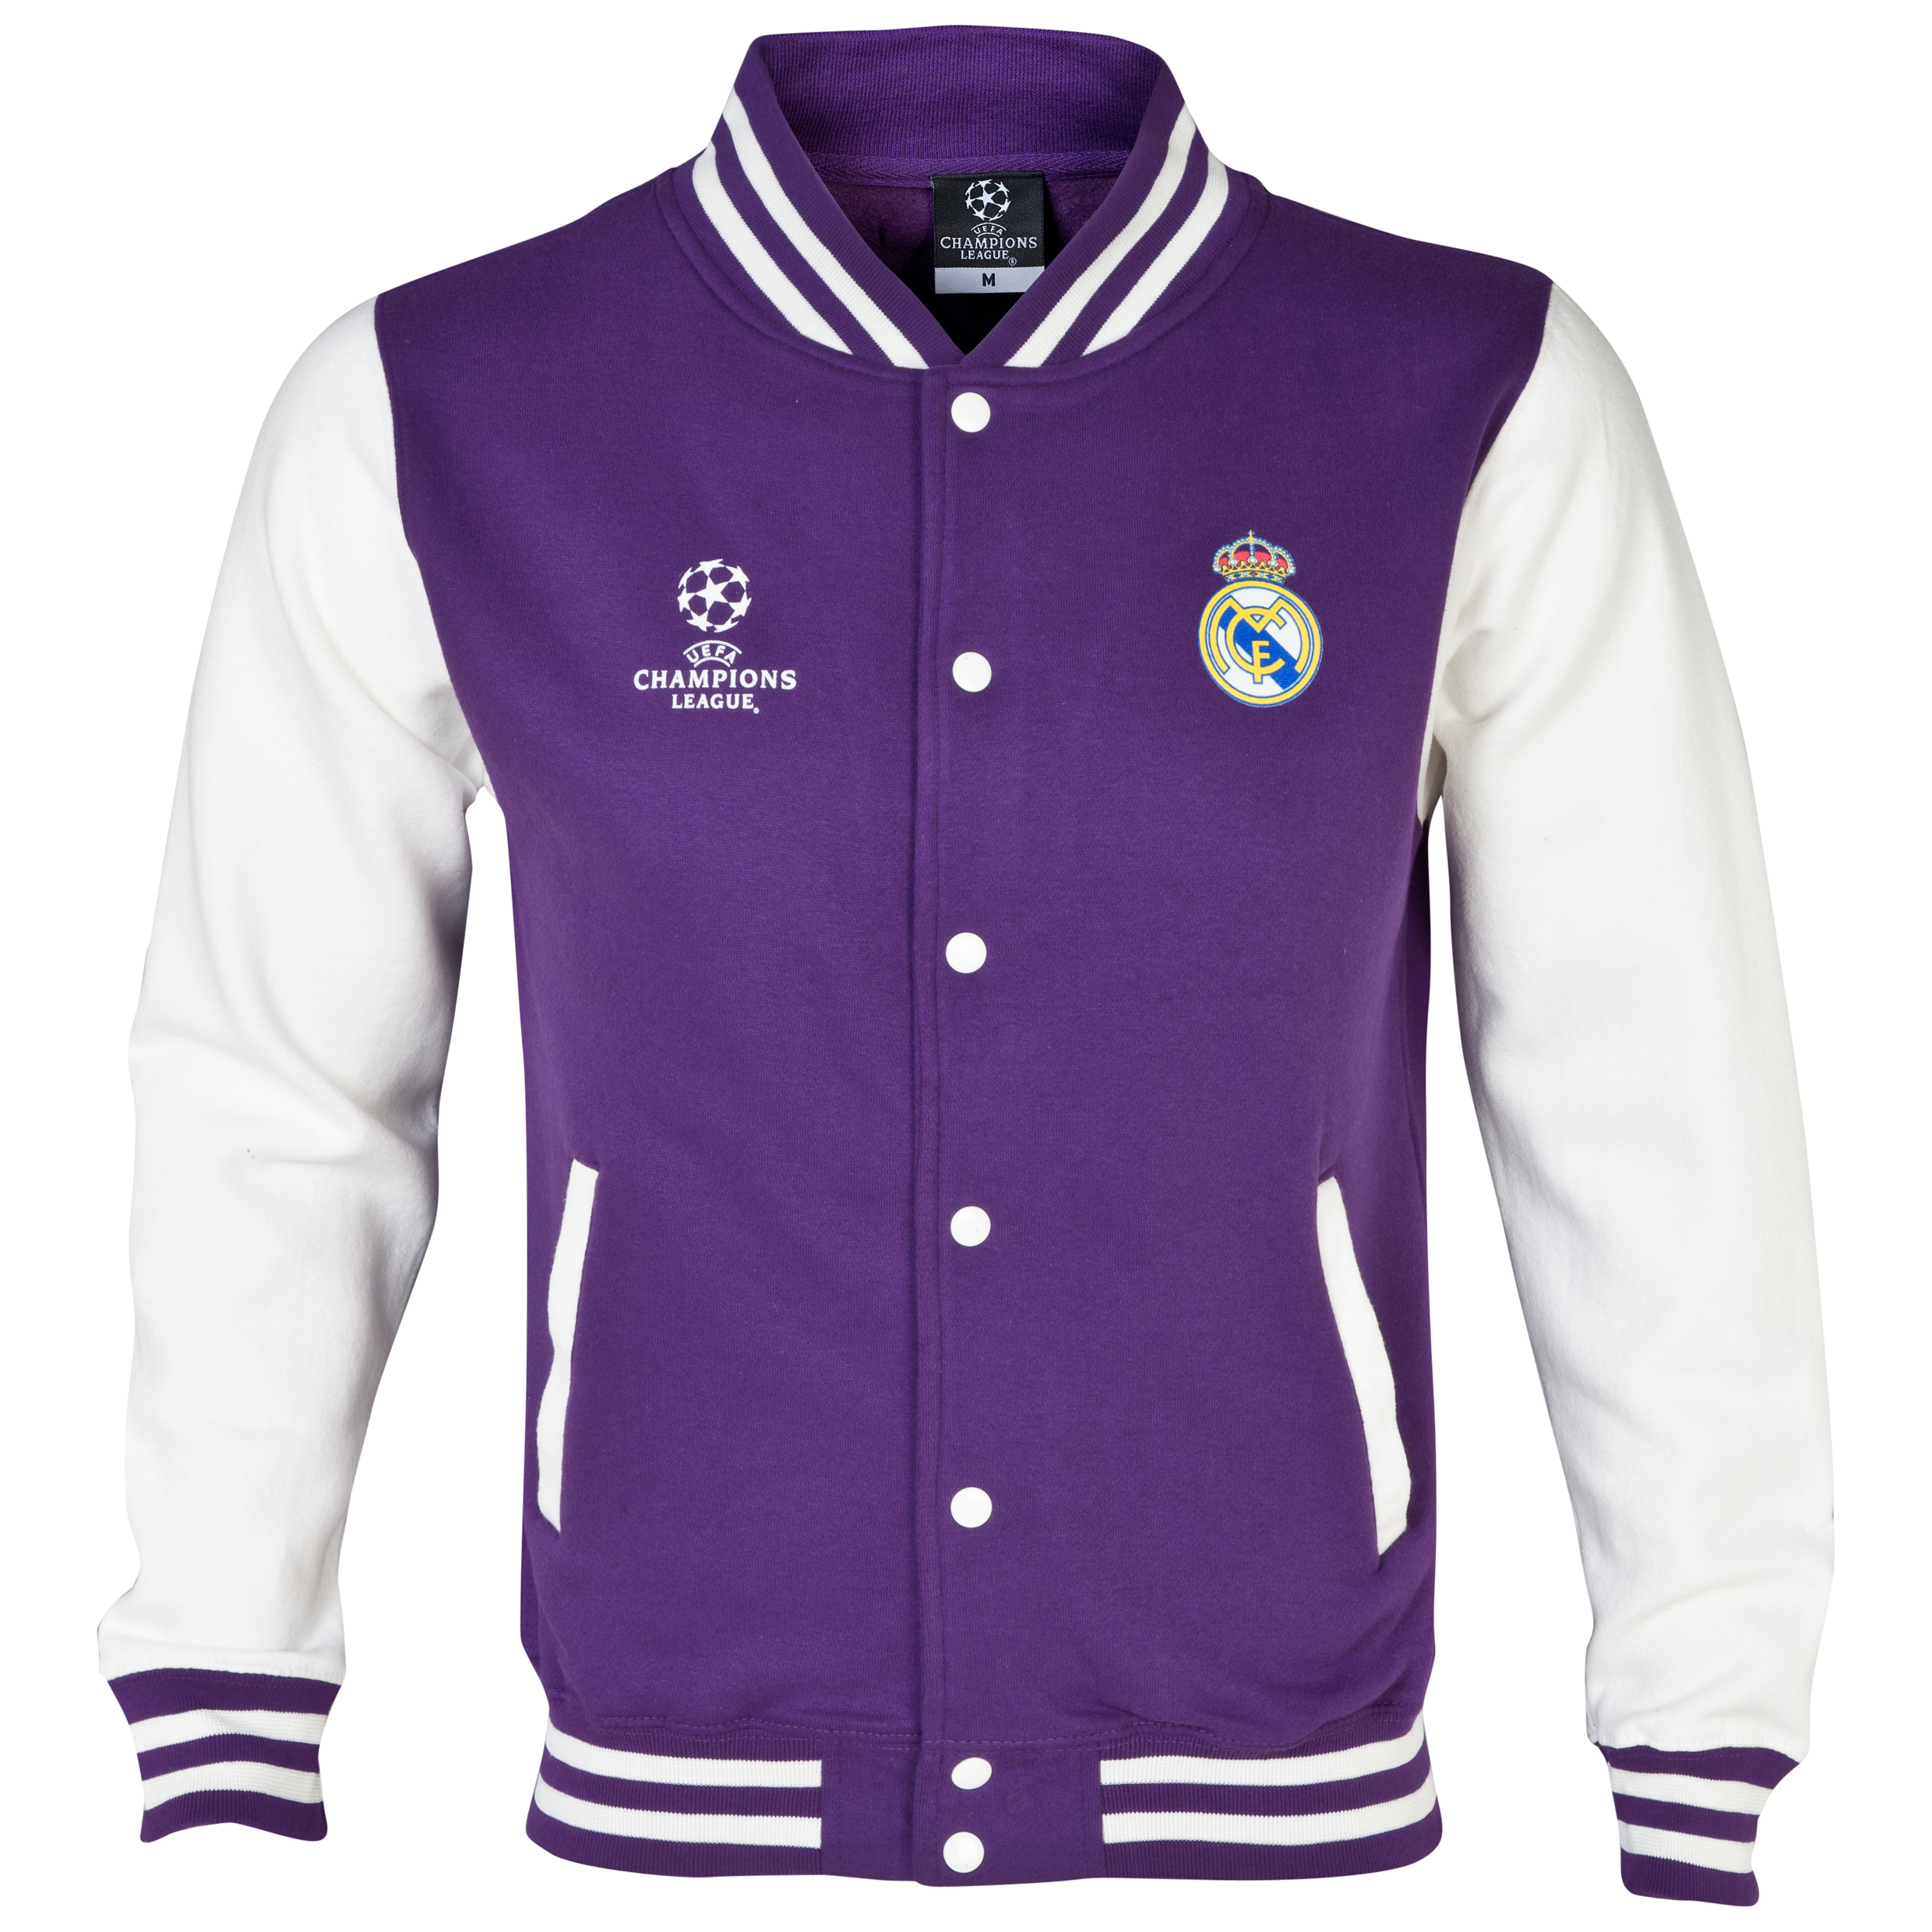 Real Madrid UEFA Champions League Varsity Baseball Jacket - Mens Purple